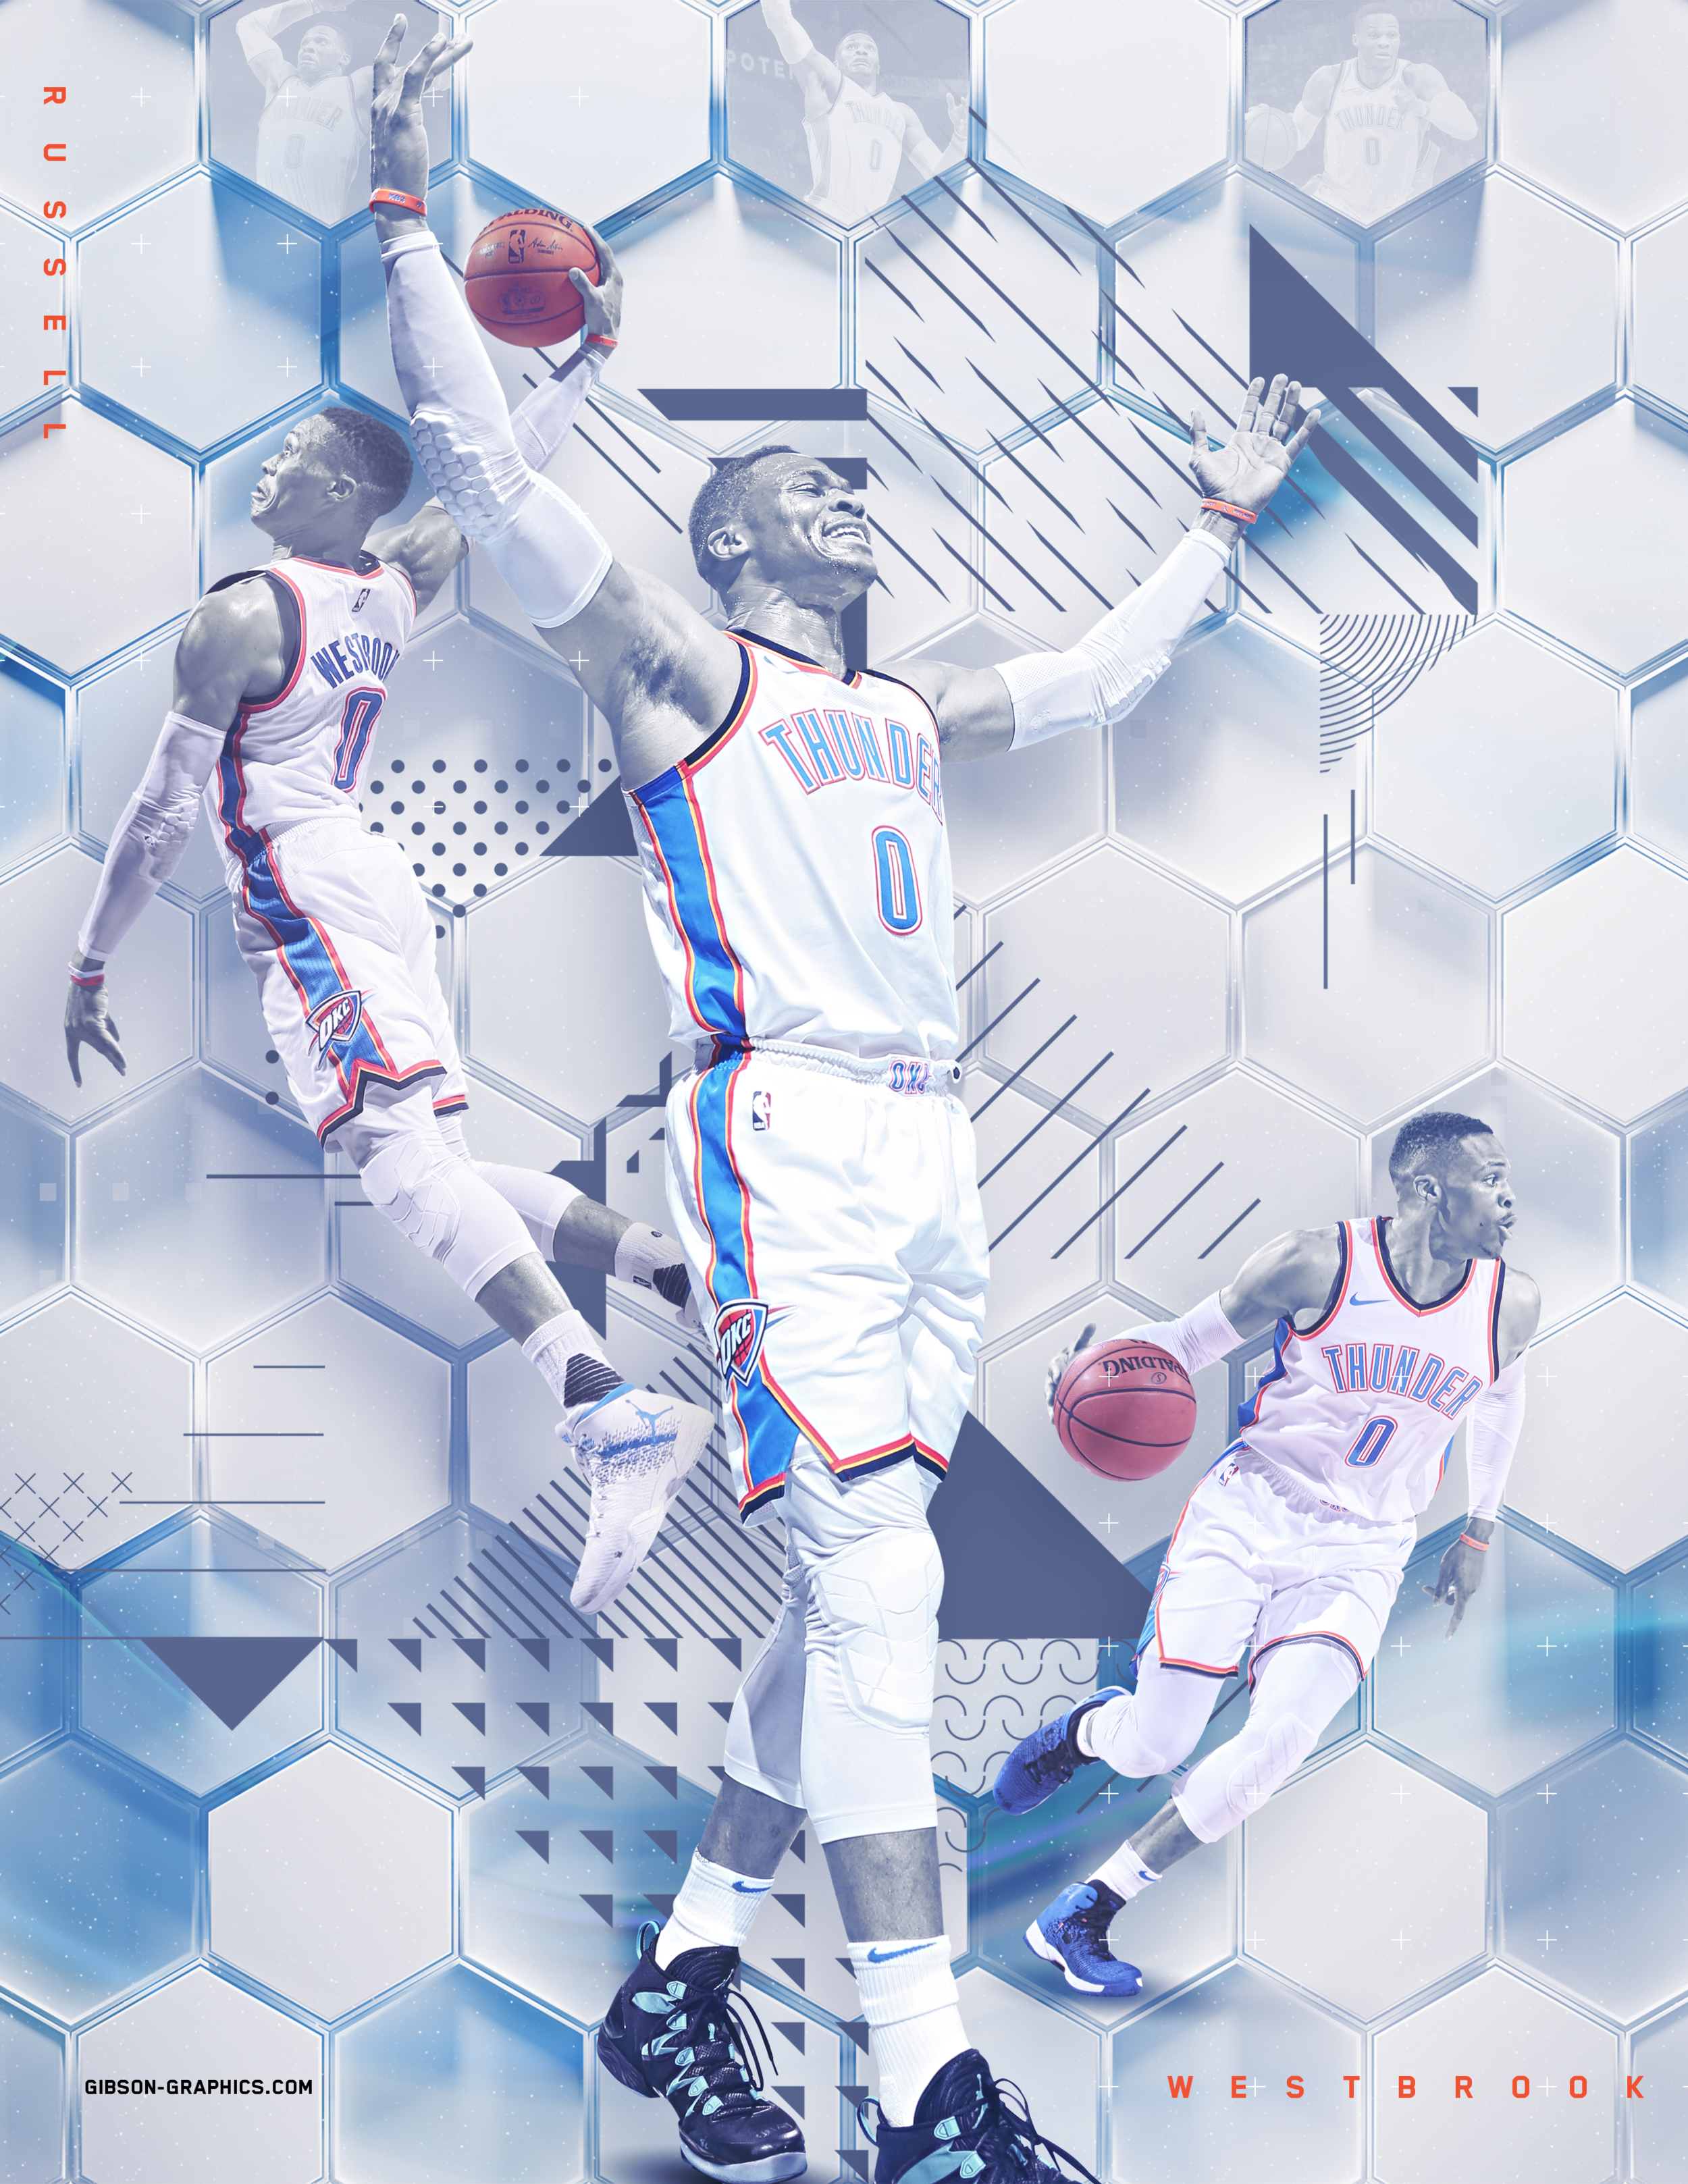 Russell Westbrook Abstract Hexagon Graphic